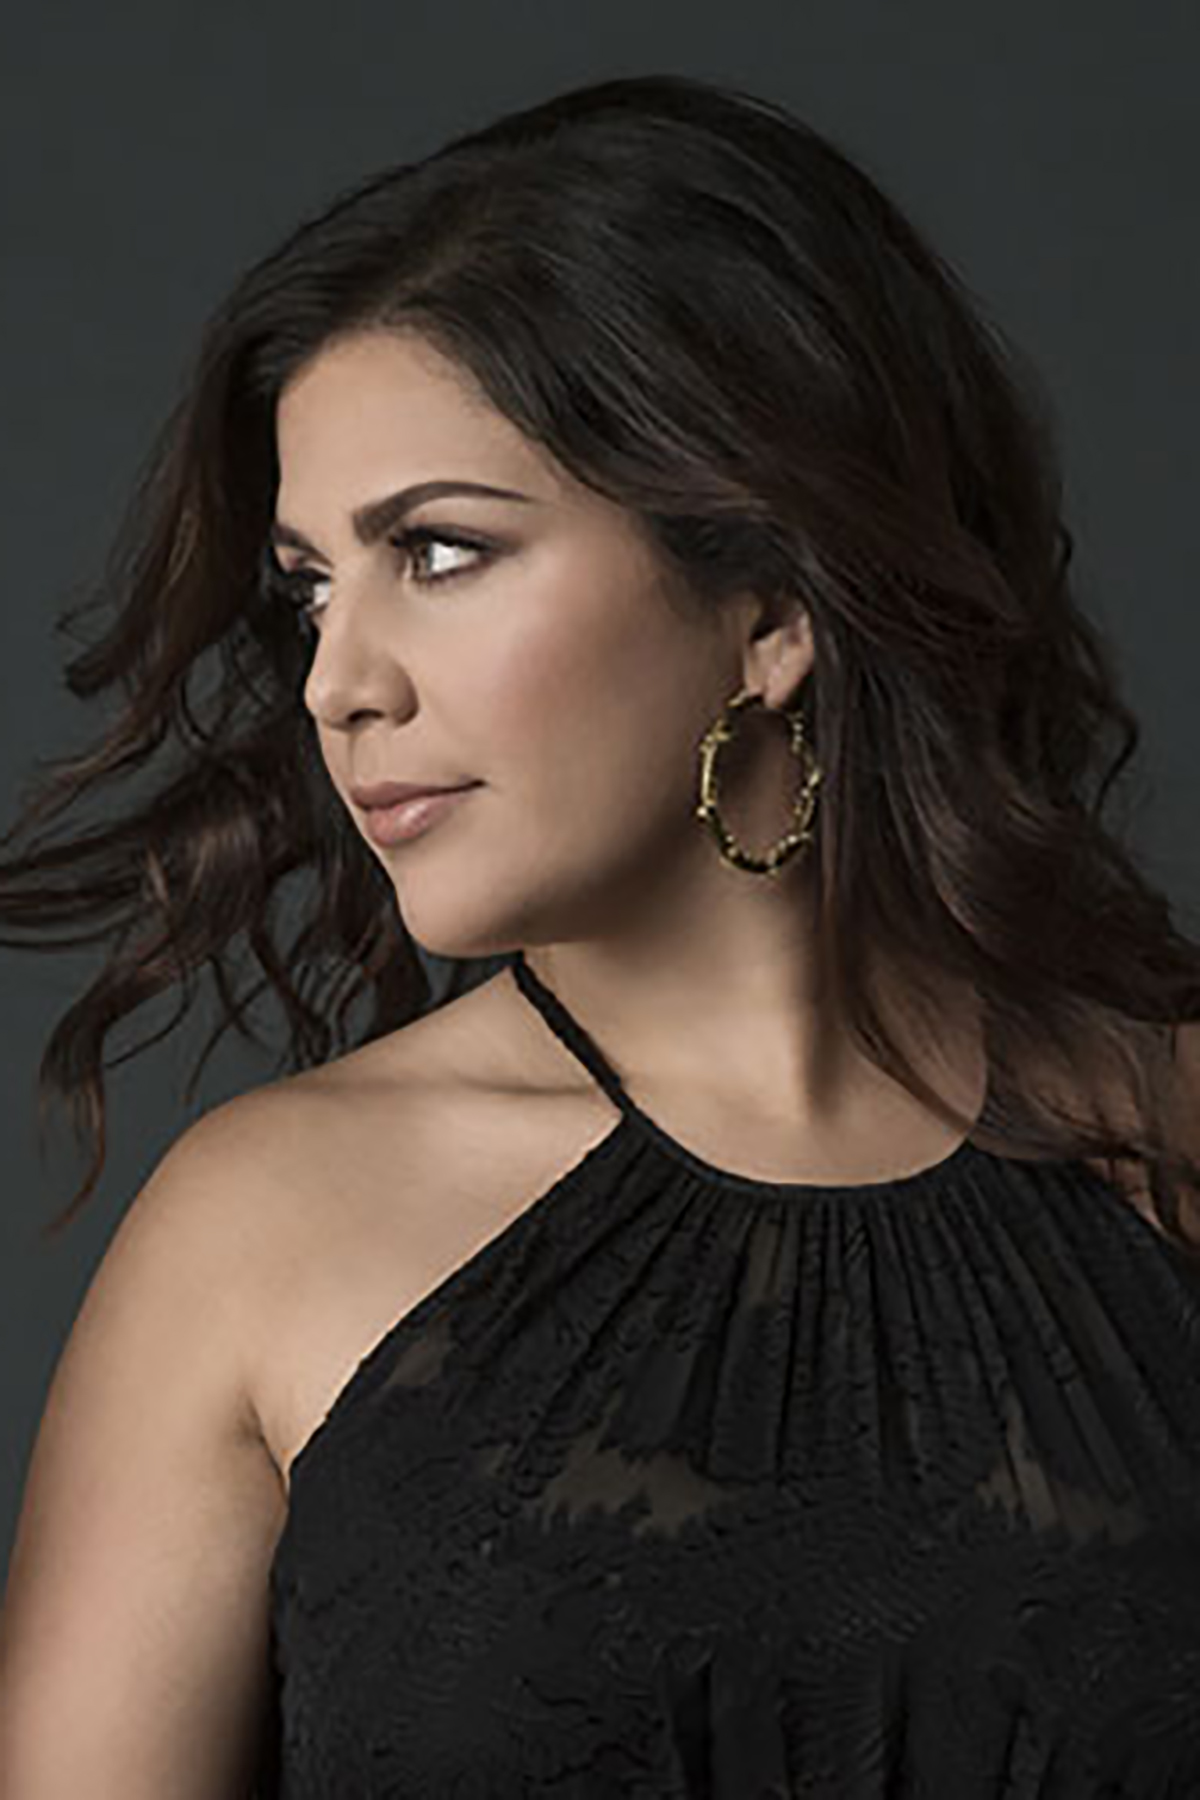 CSCS Lion's Heart Gala with Hillary Scott presented by ... Hillary Scott